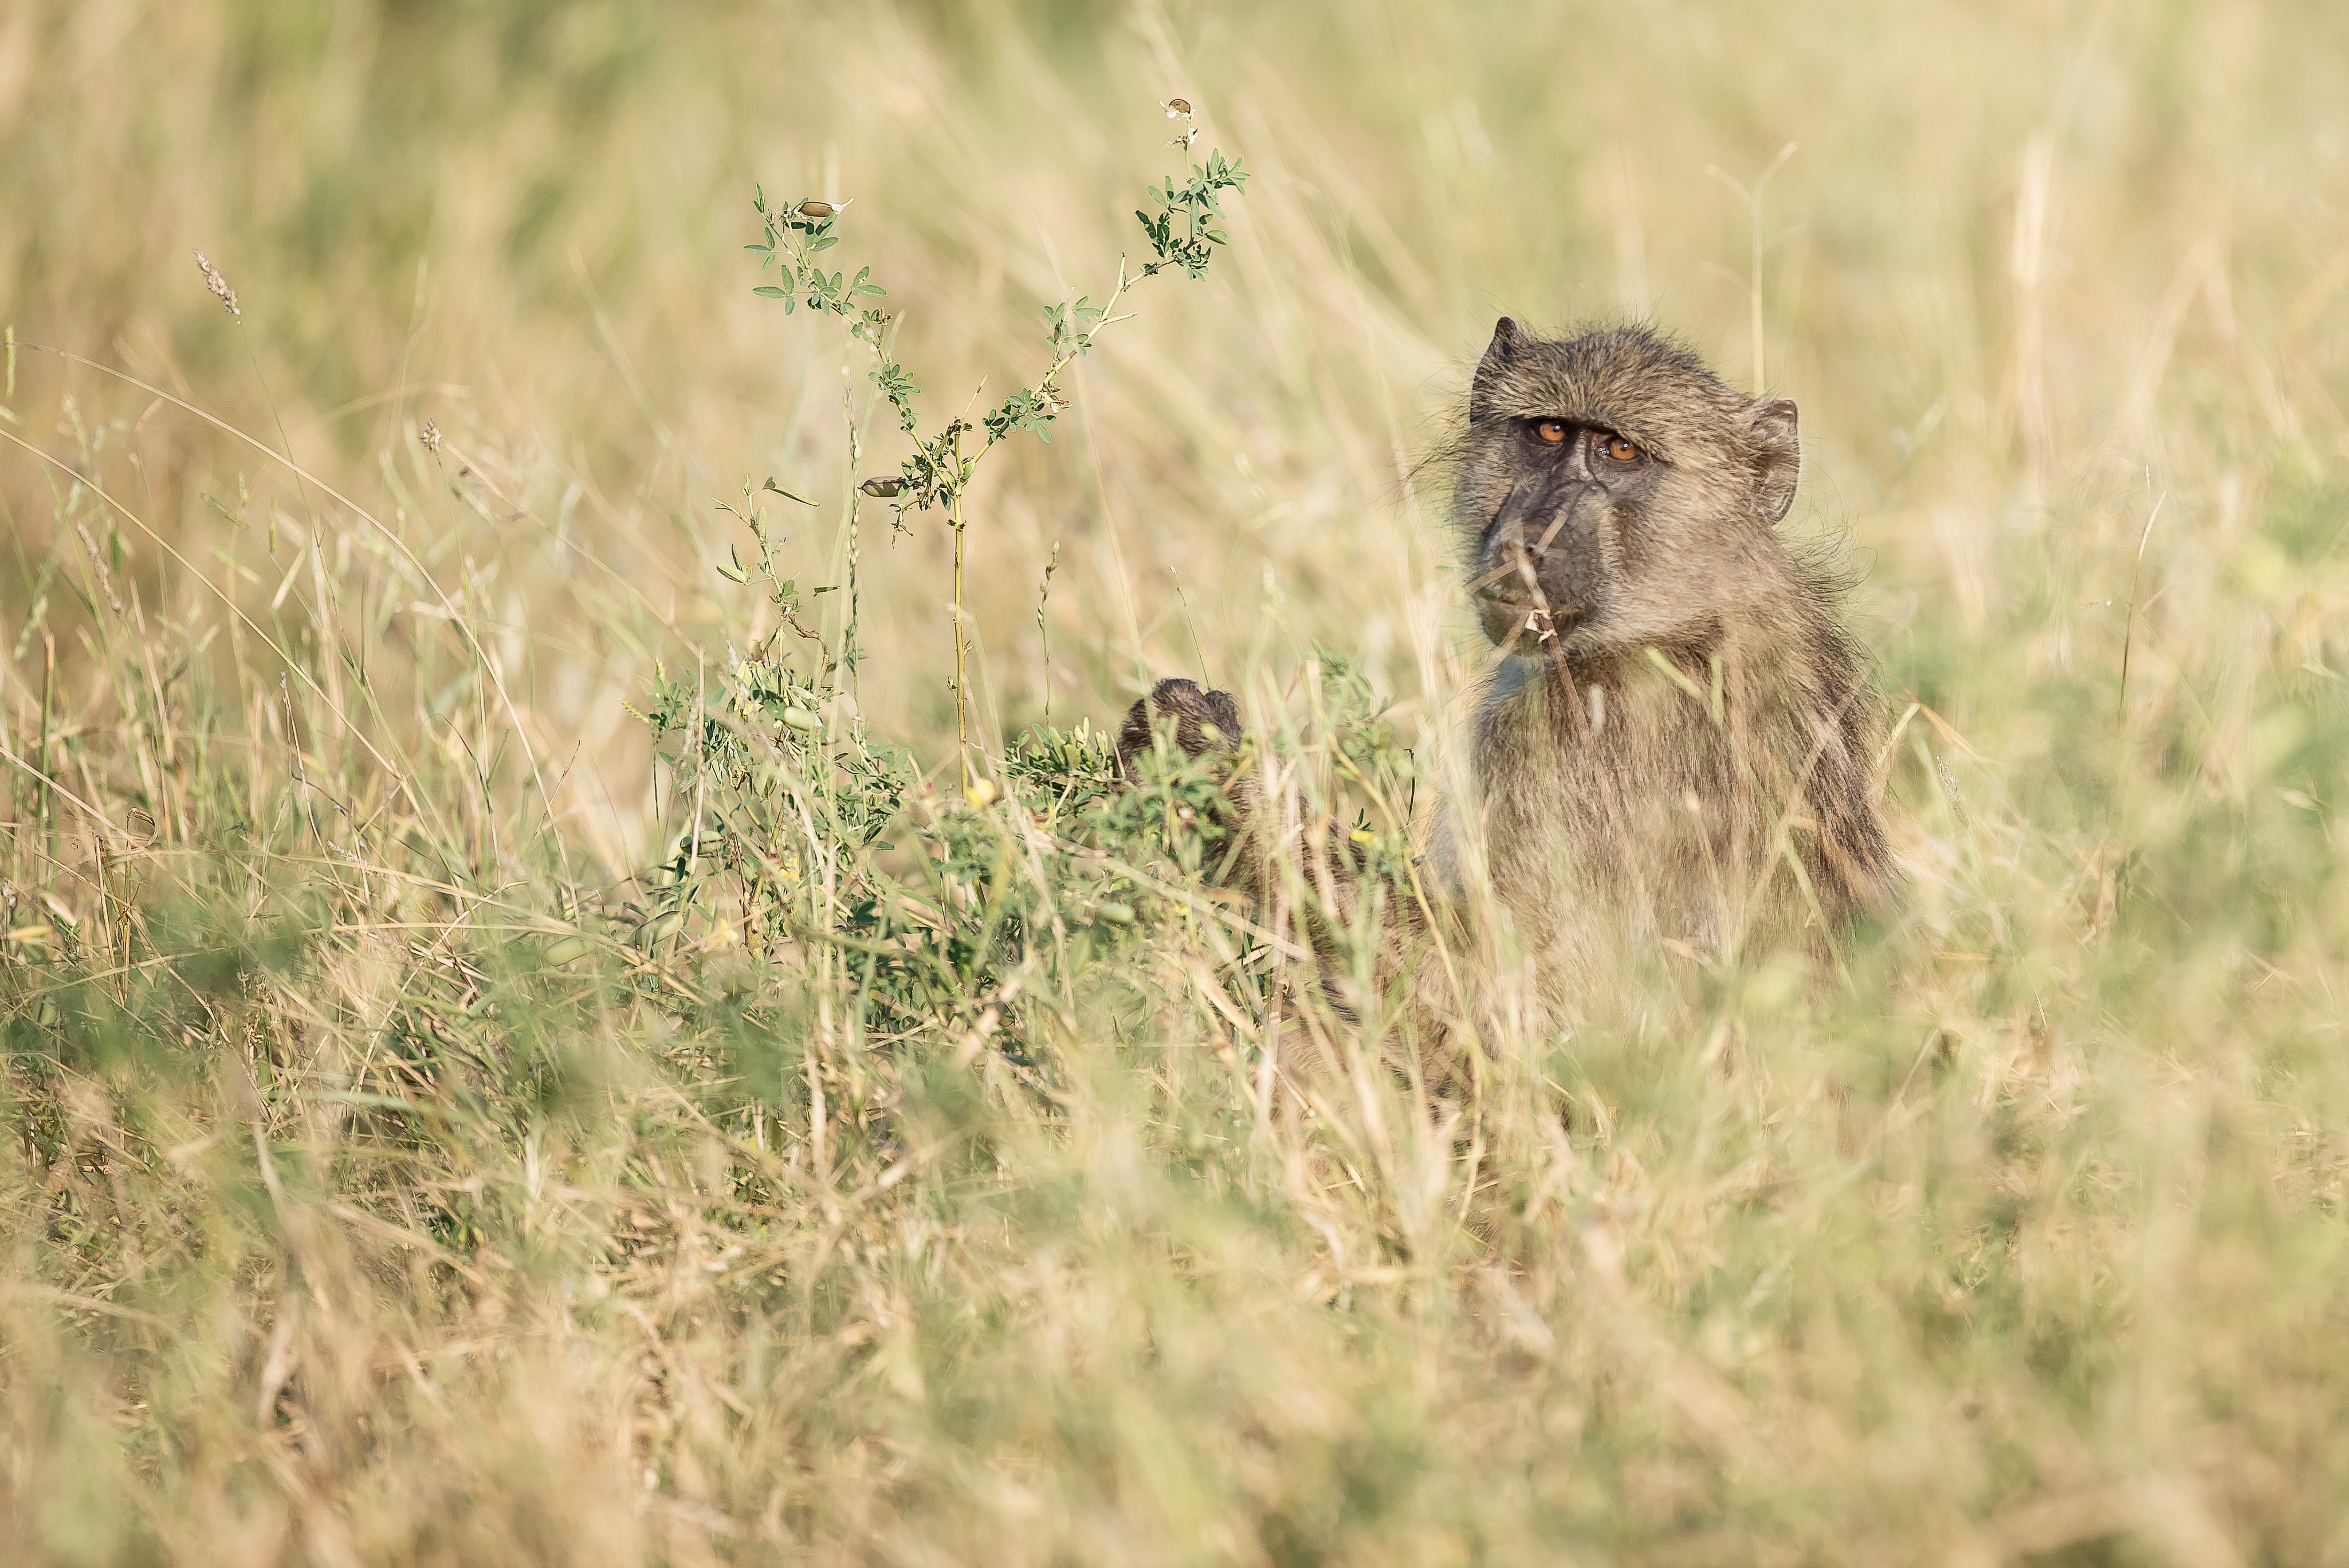 shallow focus photography of monkey in the middle of grass field